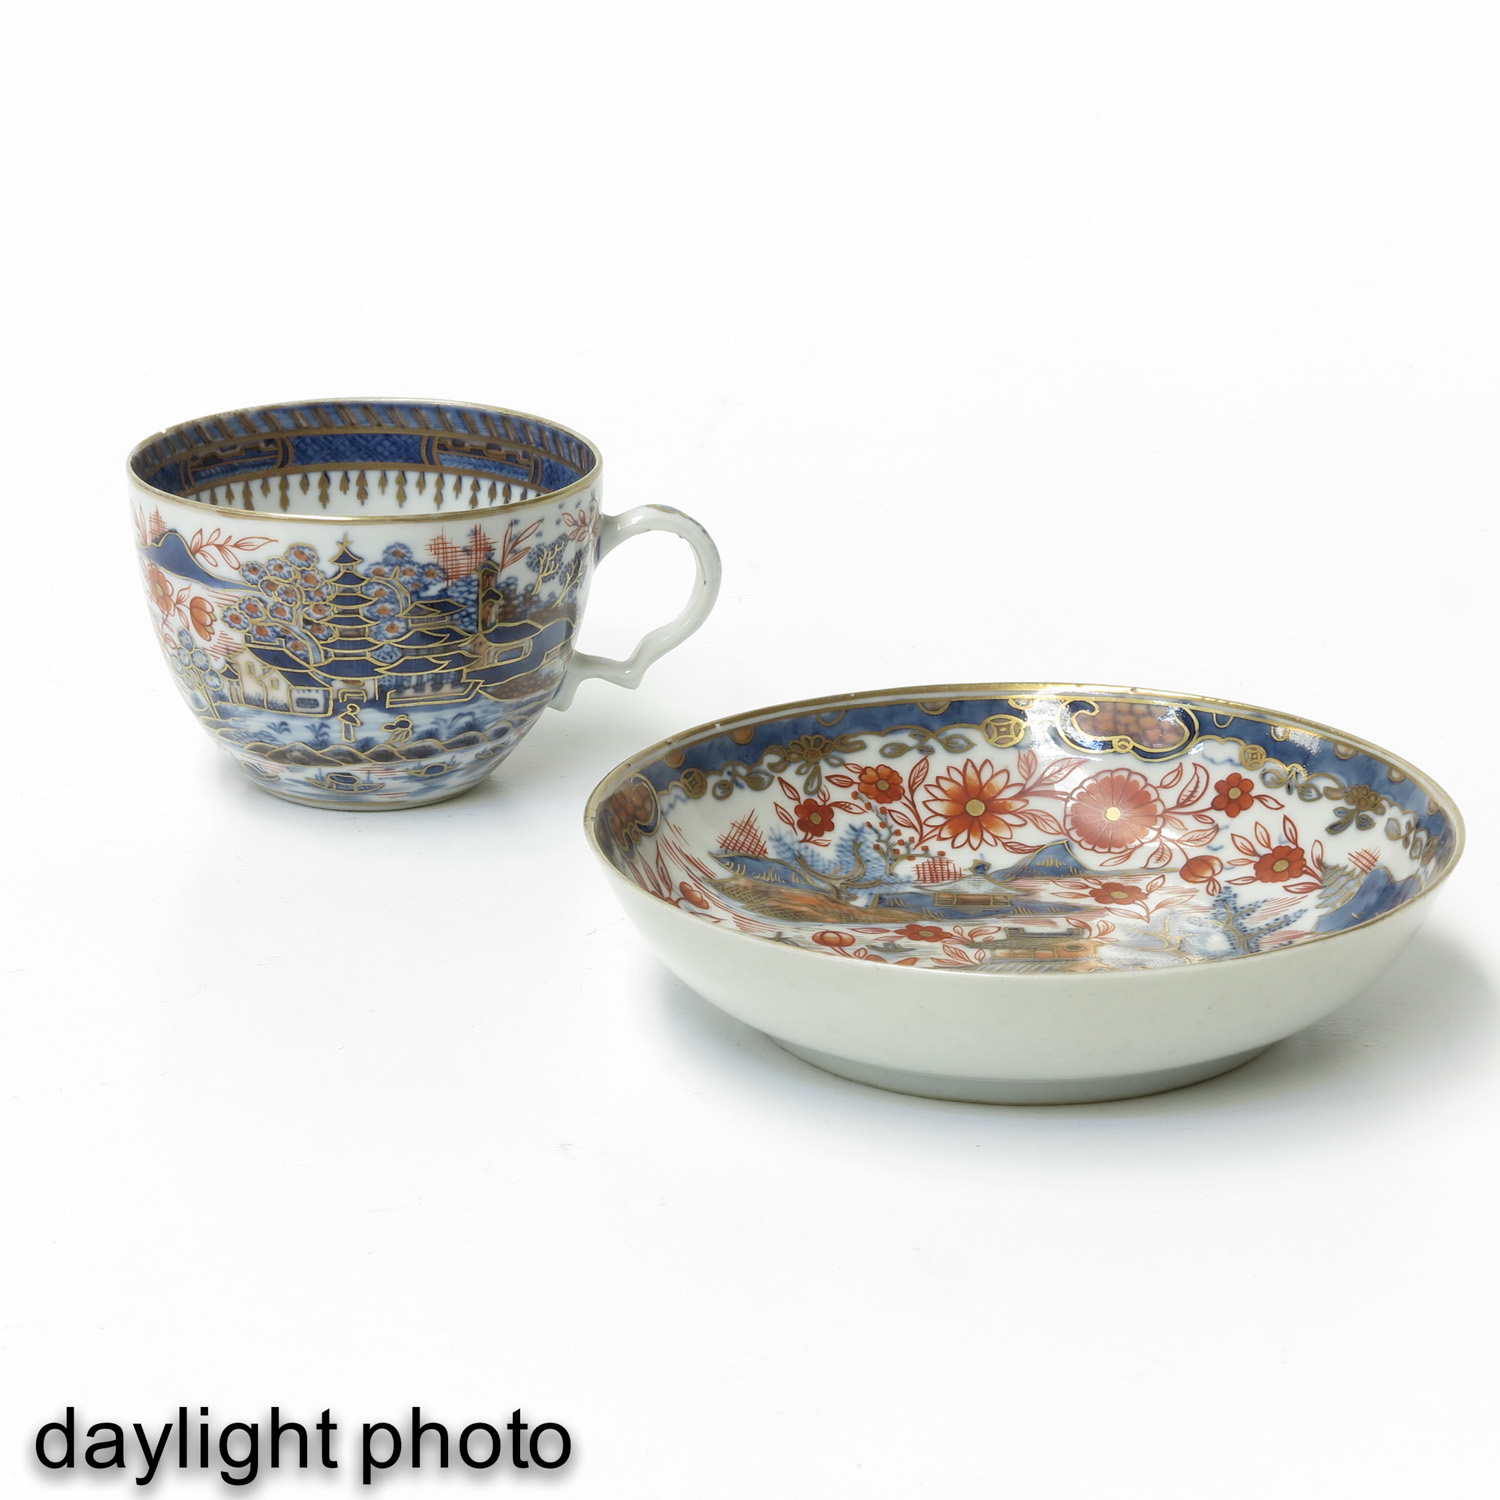 4 Imari Cups and Saucers - Image 9 of 10